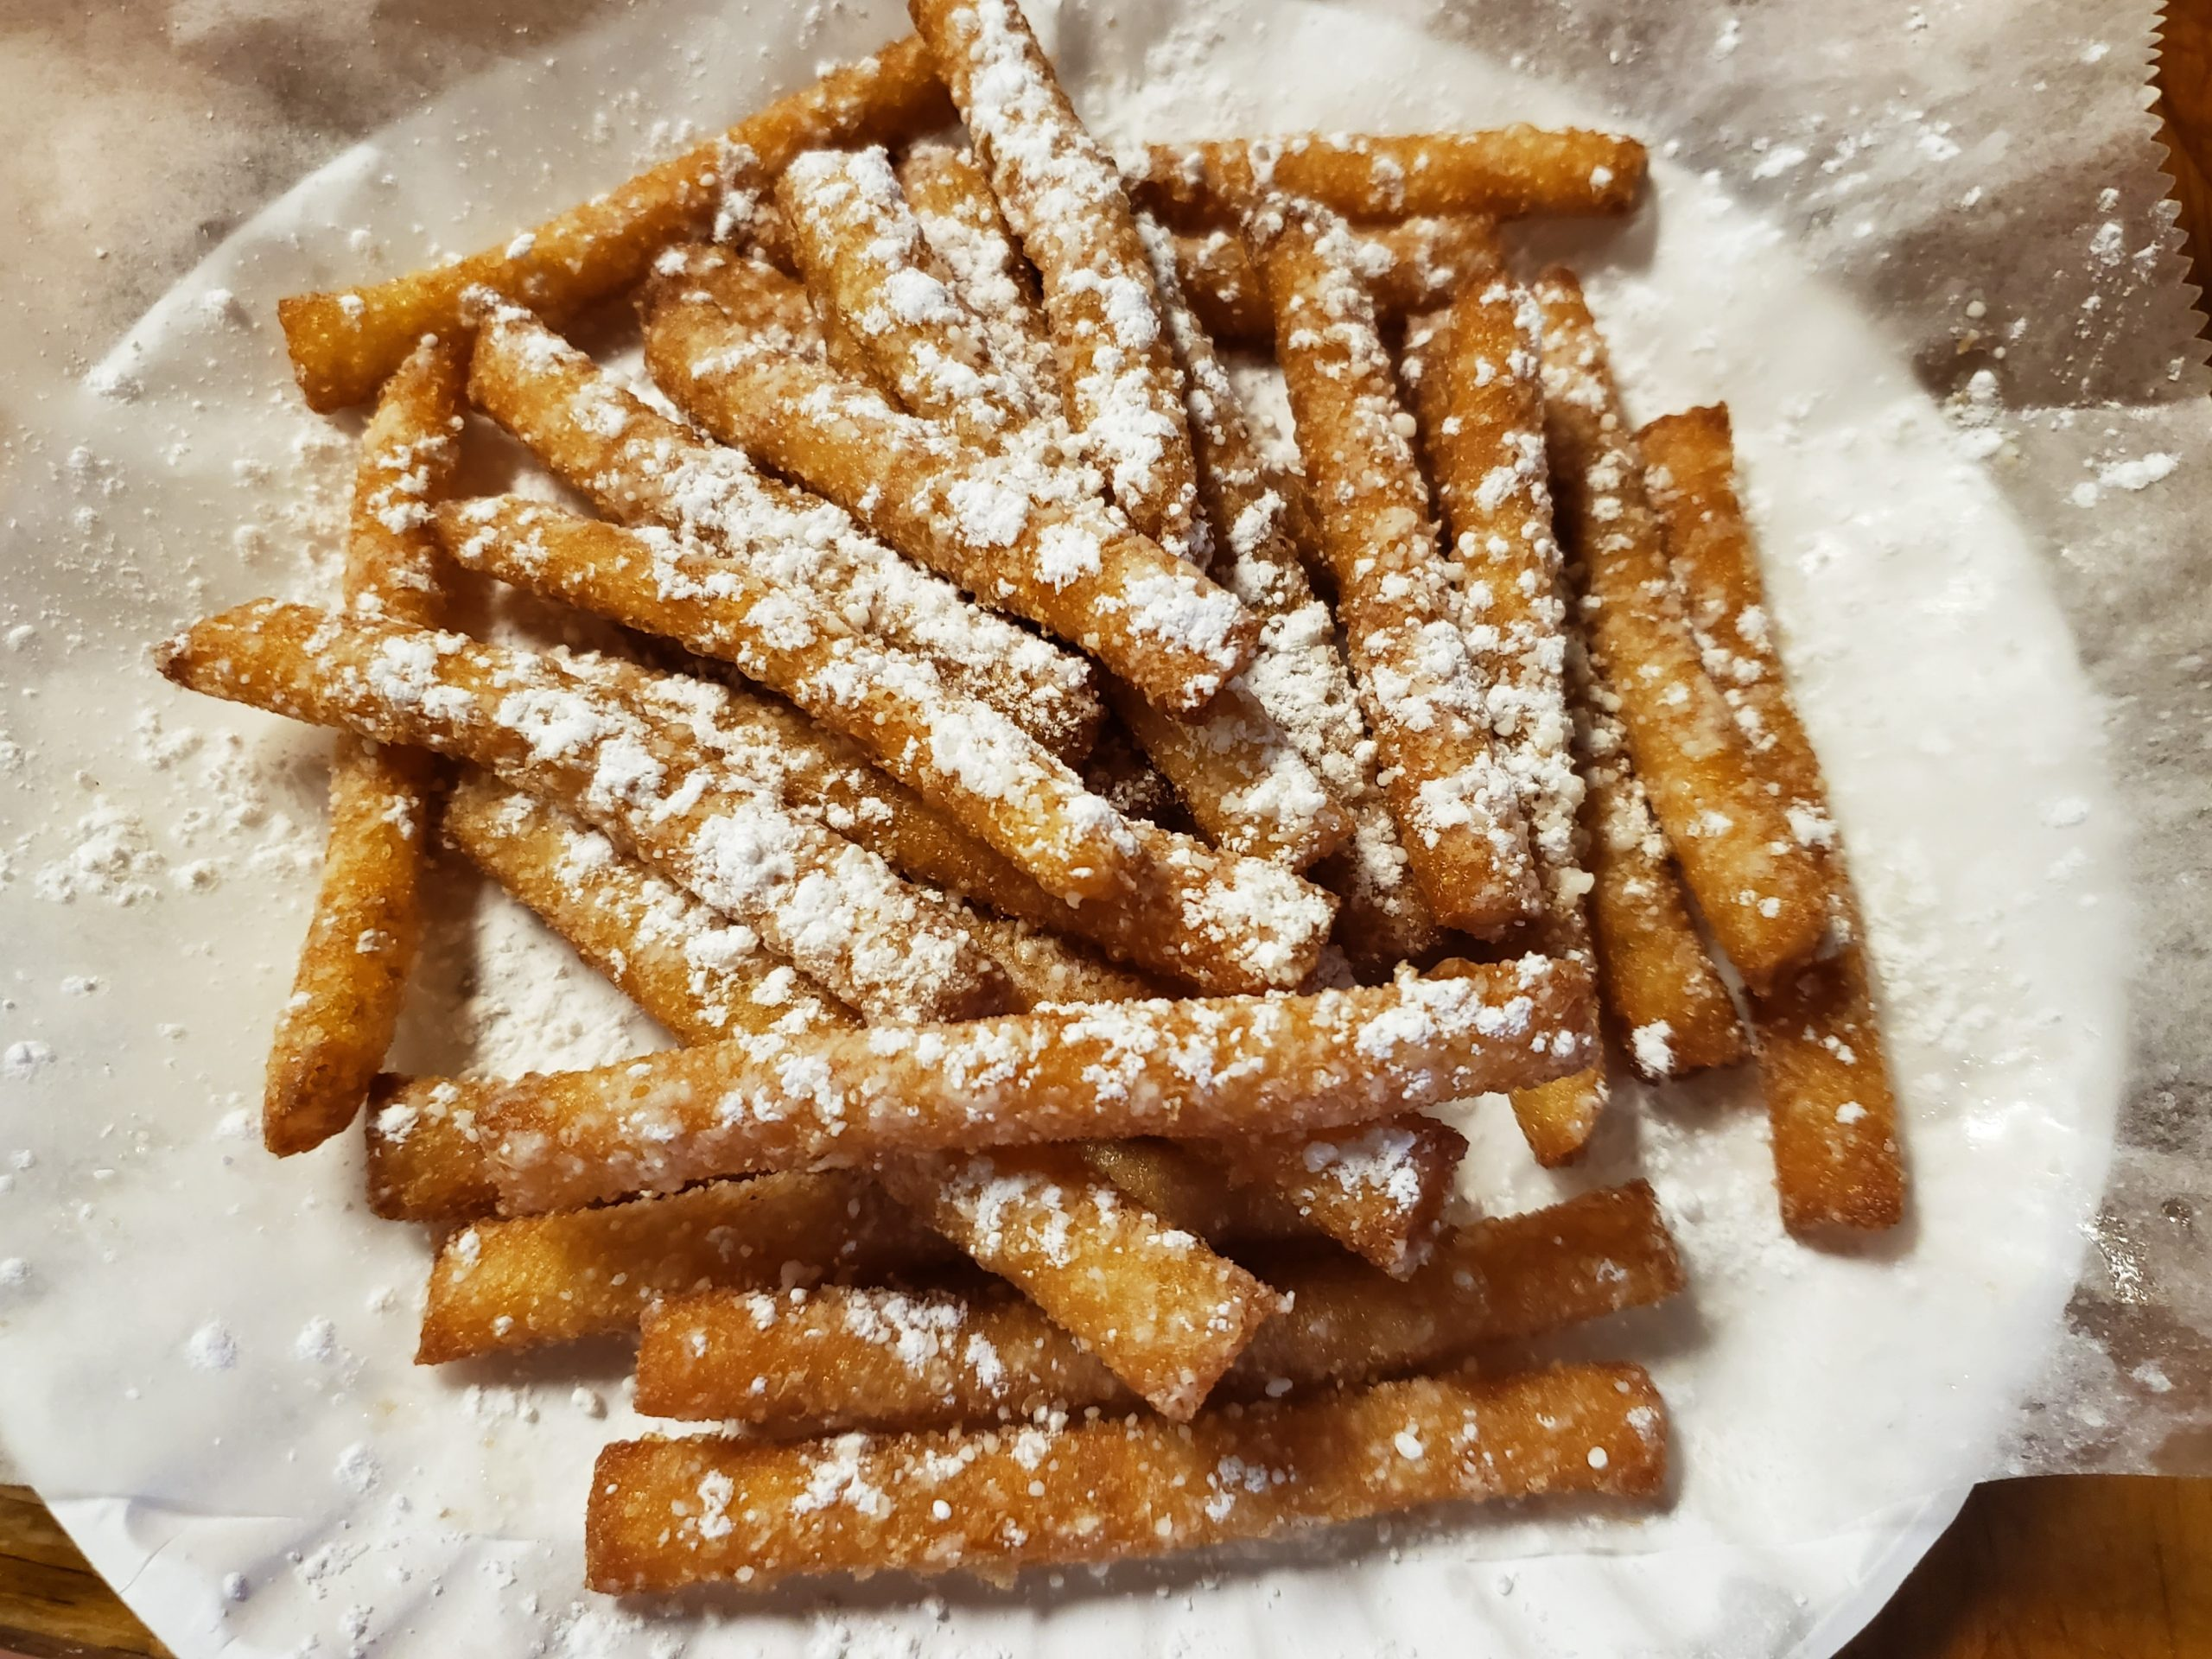 Funnel Fries Good Guys Pizza Chili,NY